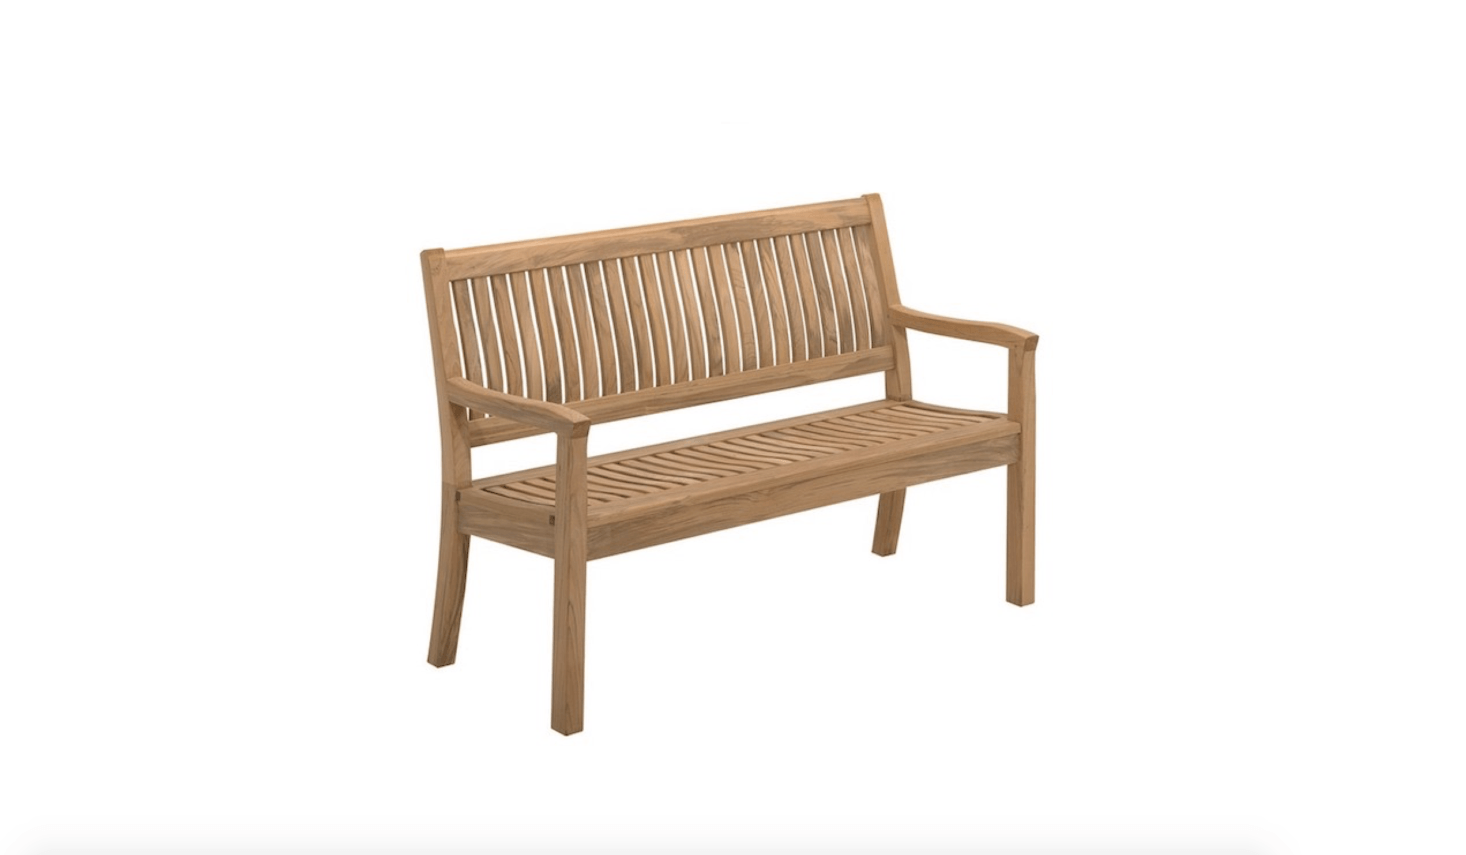 From Danish Designer Povl Eskildsen, A Kingston Teak Bench Is 52.5 Inches  Long And 24.5